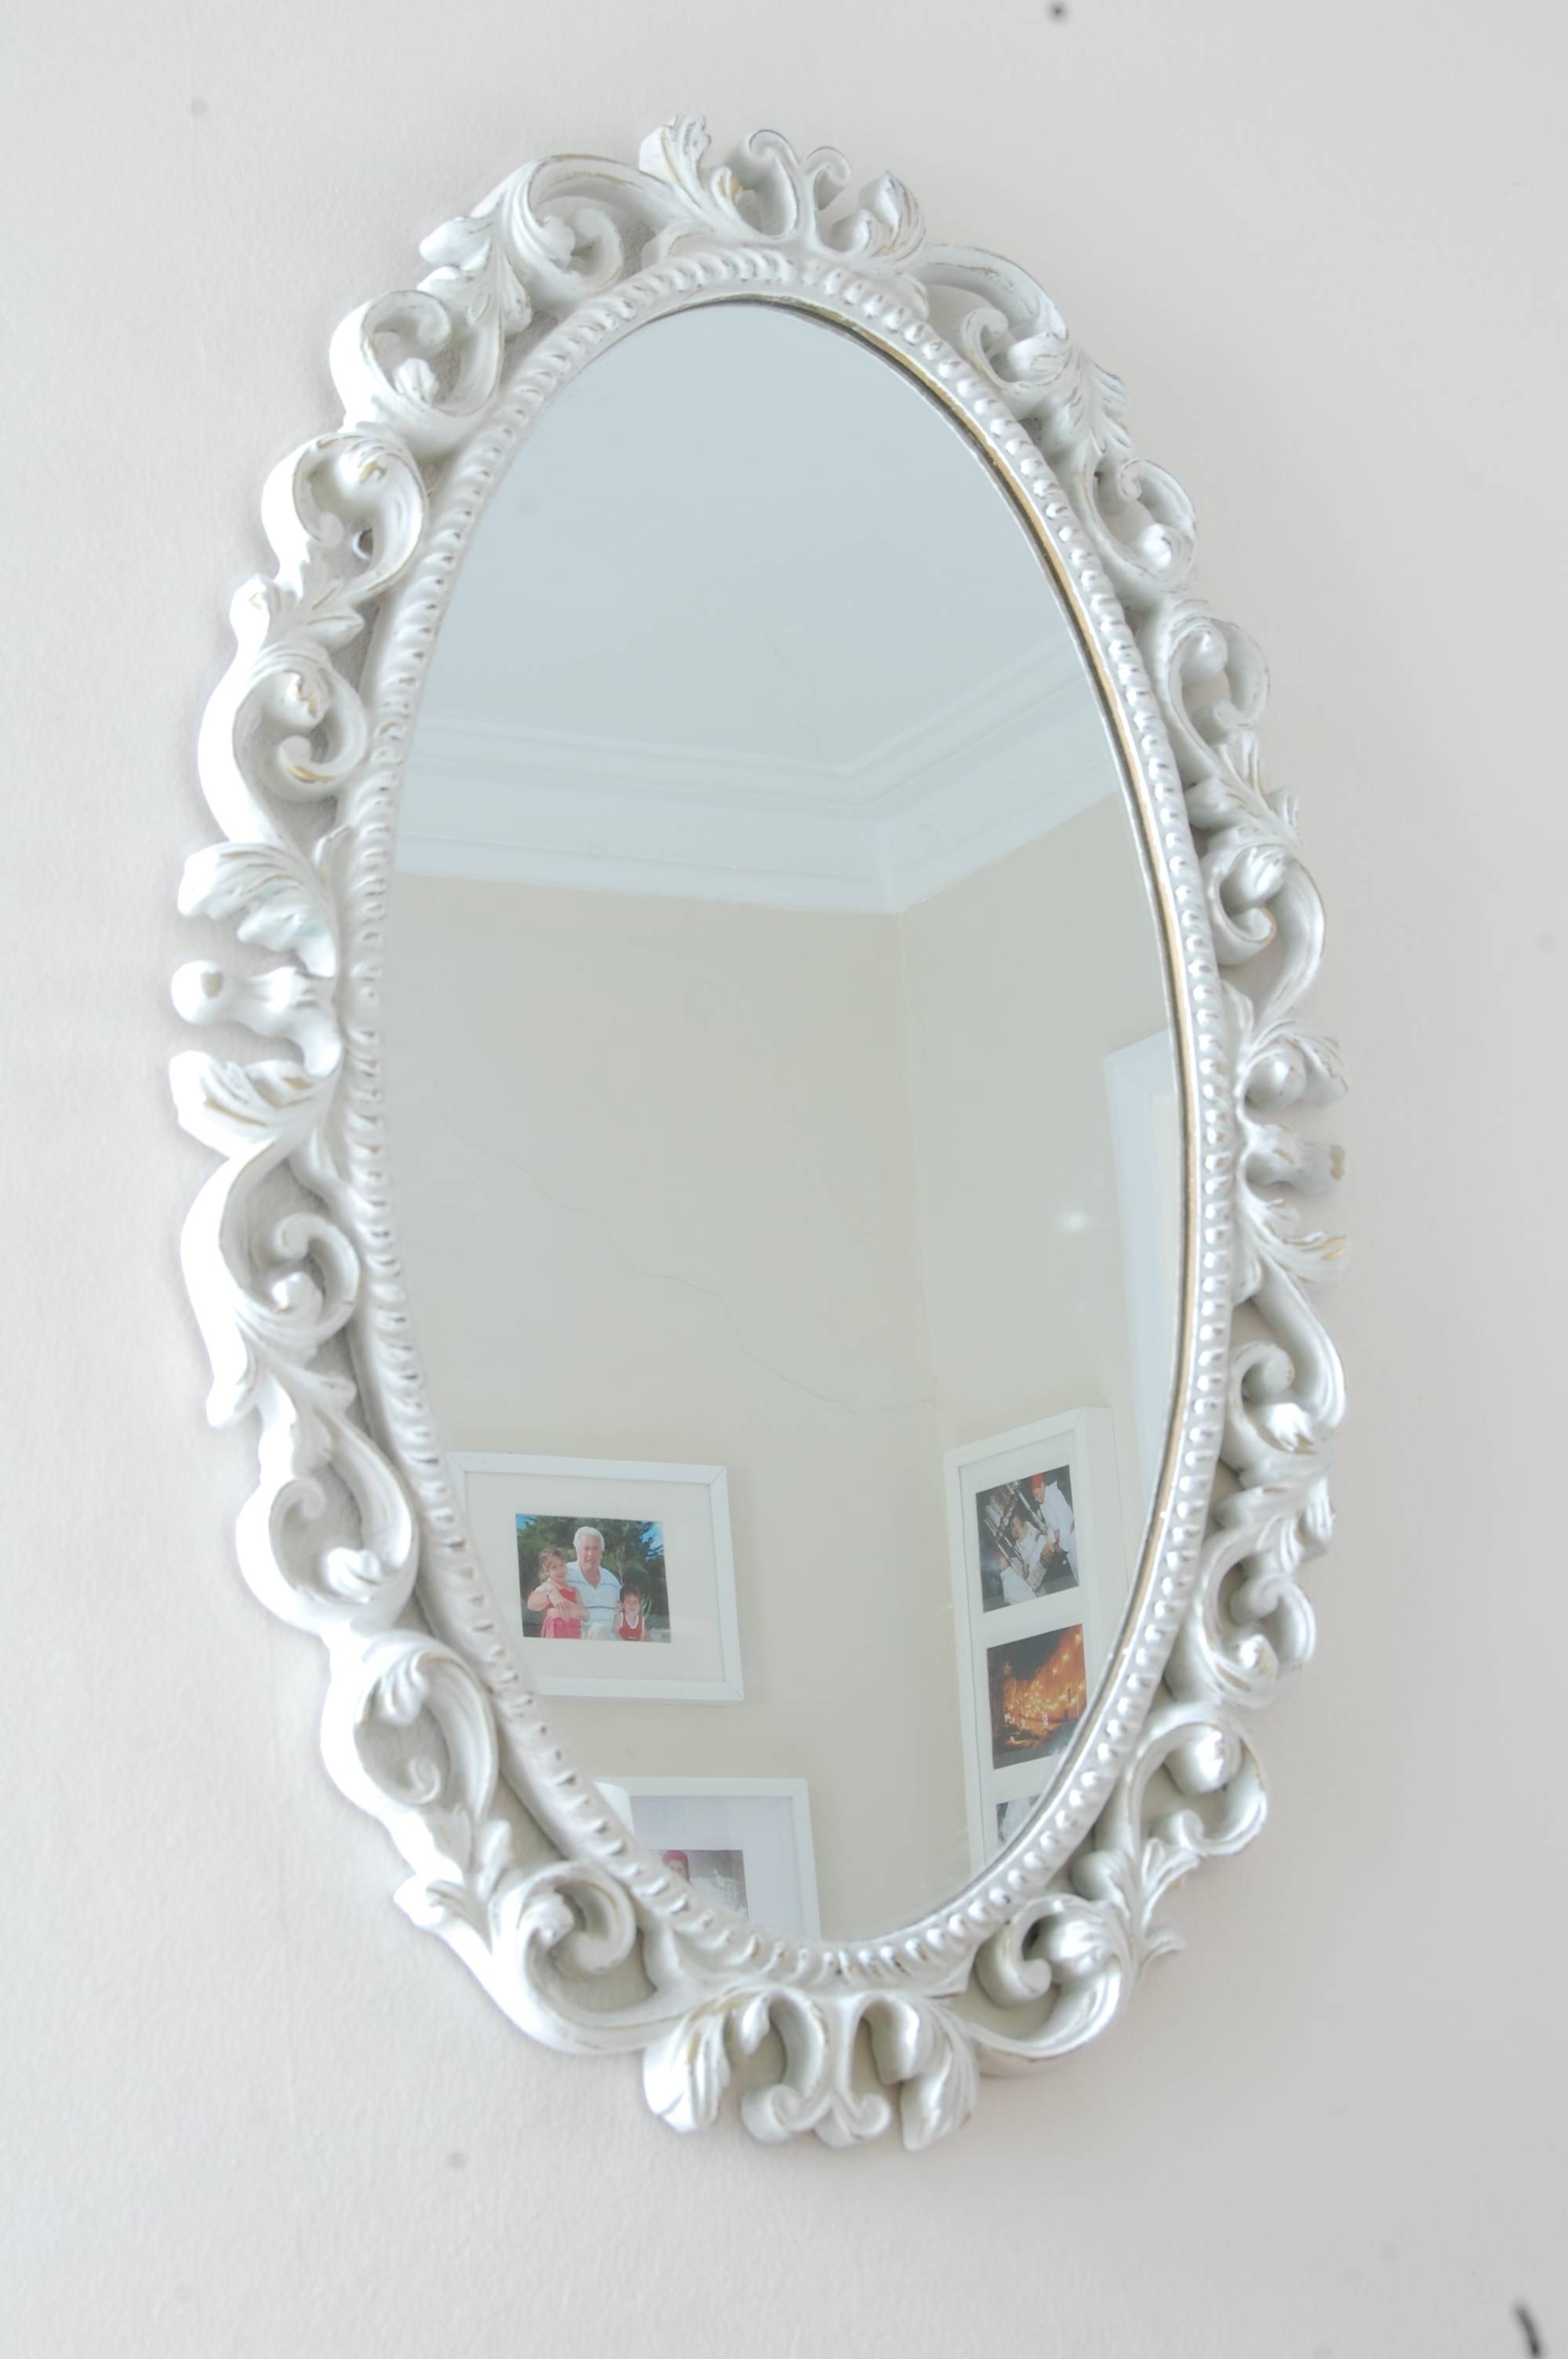 Antique Oval Mirror - Lovestruck Interiors throughout Oval Shabby Chic Mirrors (Image 5 of 25)